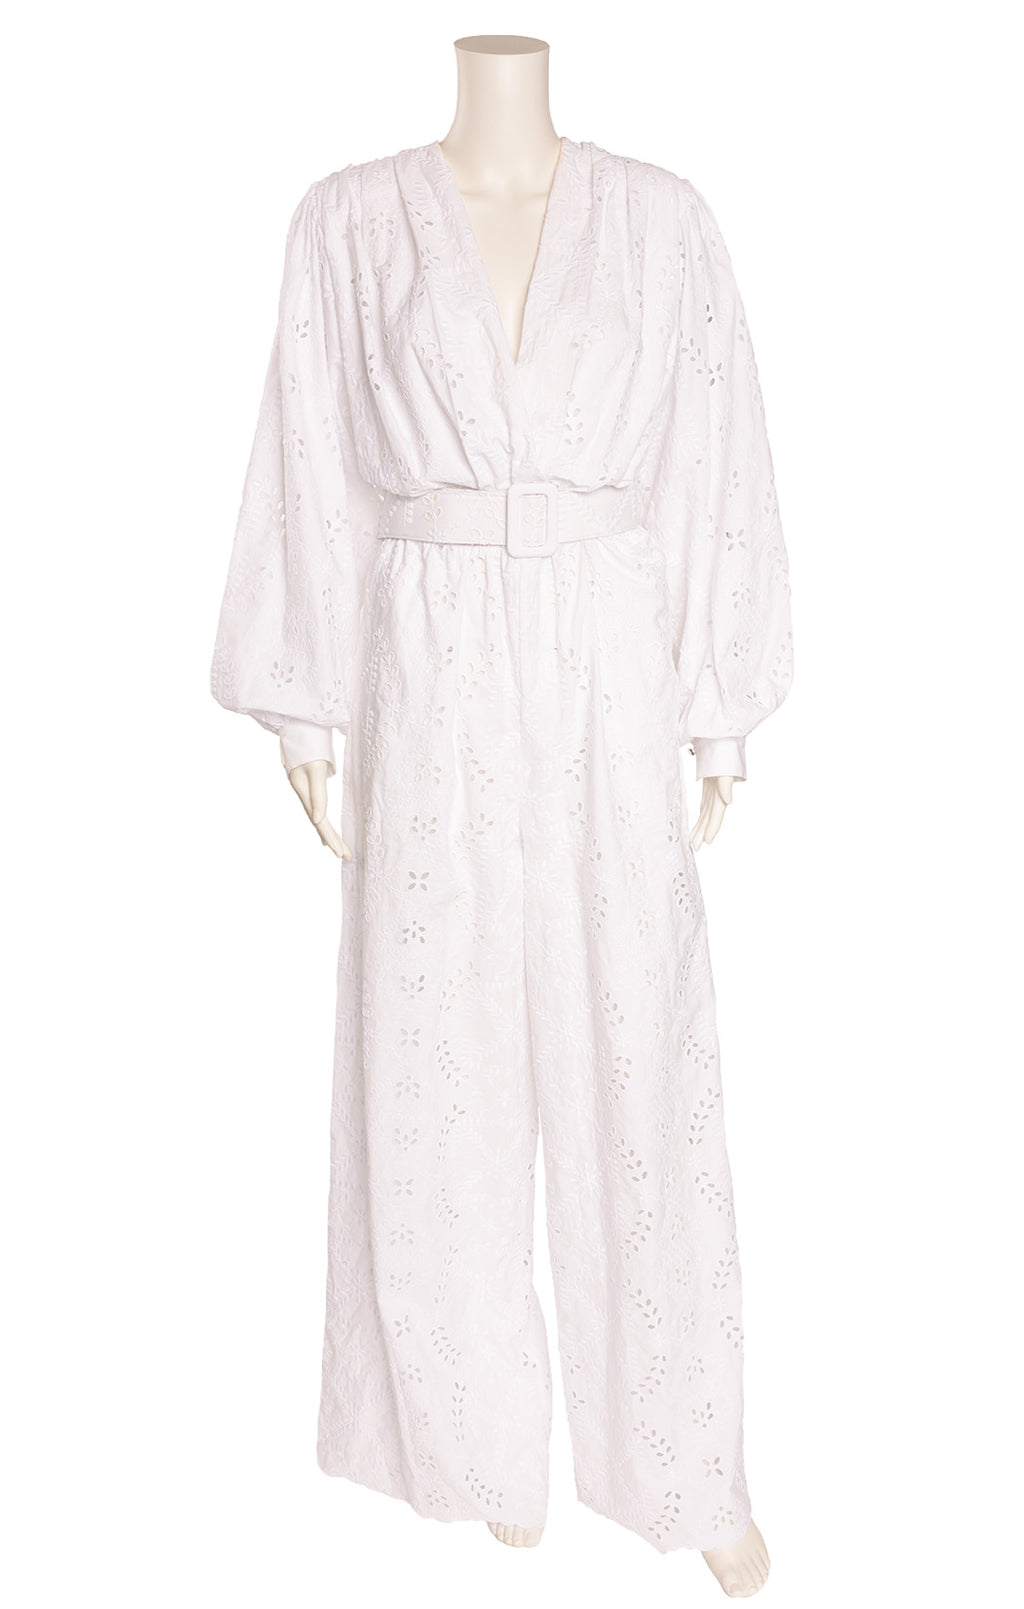 Front view of OFF WHITE by VIRGIL ABLOH Jumpsuit  Size: FR 42 (comparable to US 10)